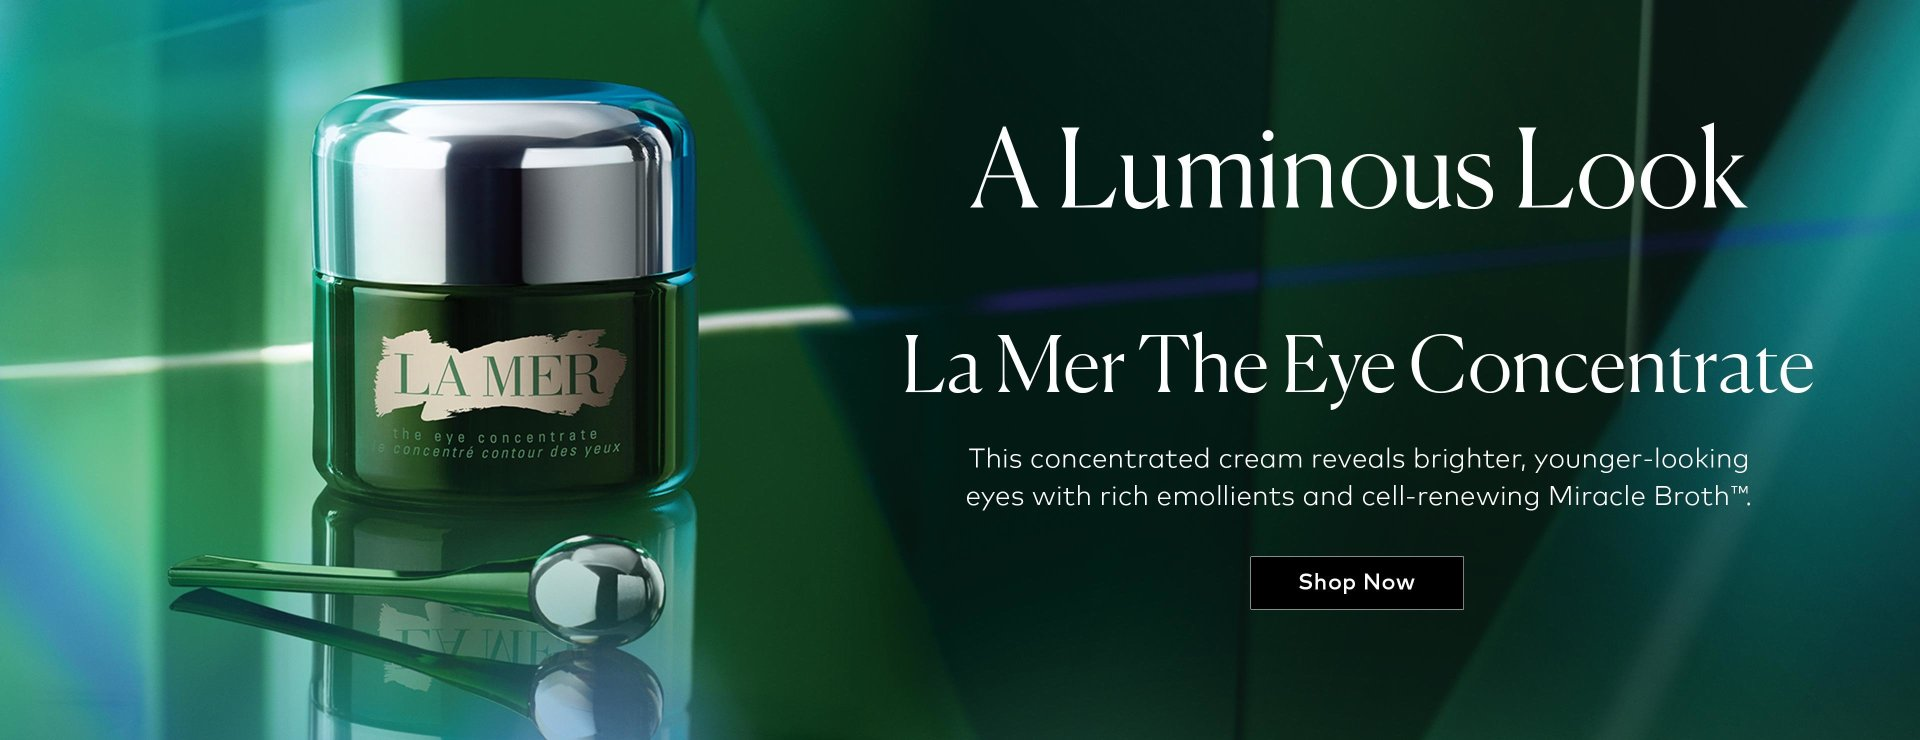 Shop La Mer's The Eye Concentrate on Beautylish.com